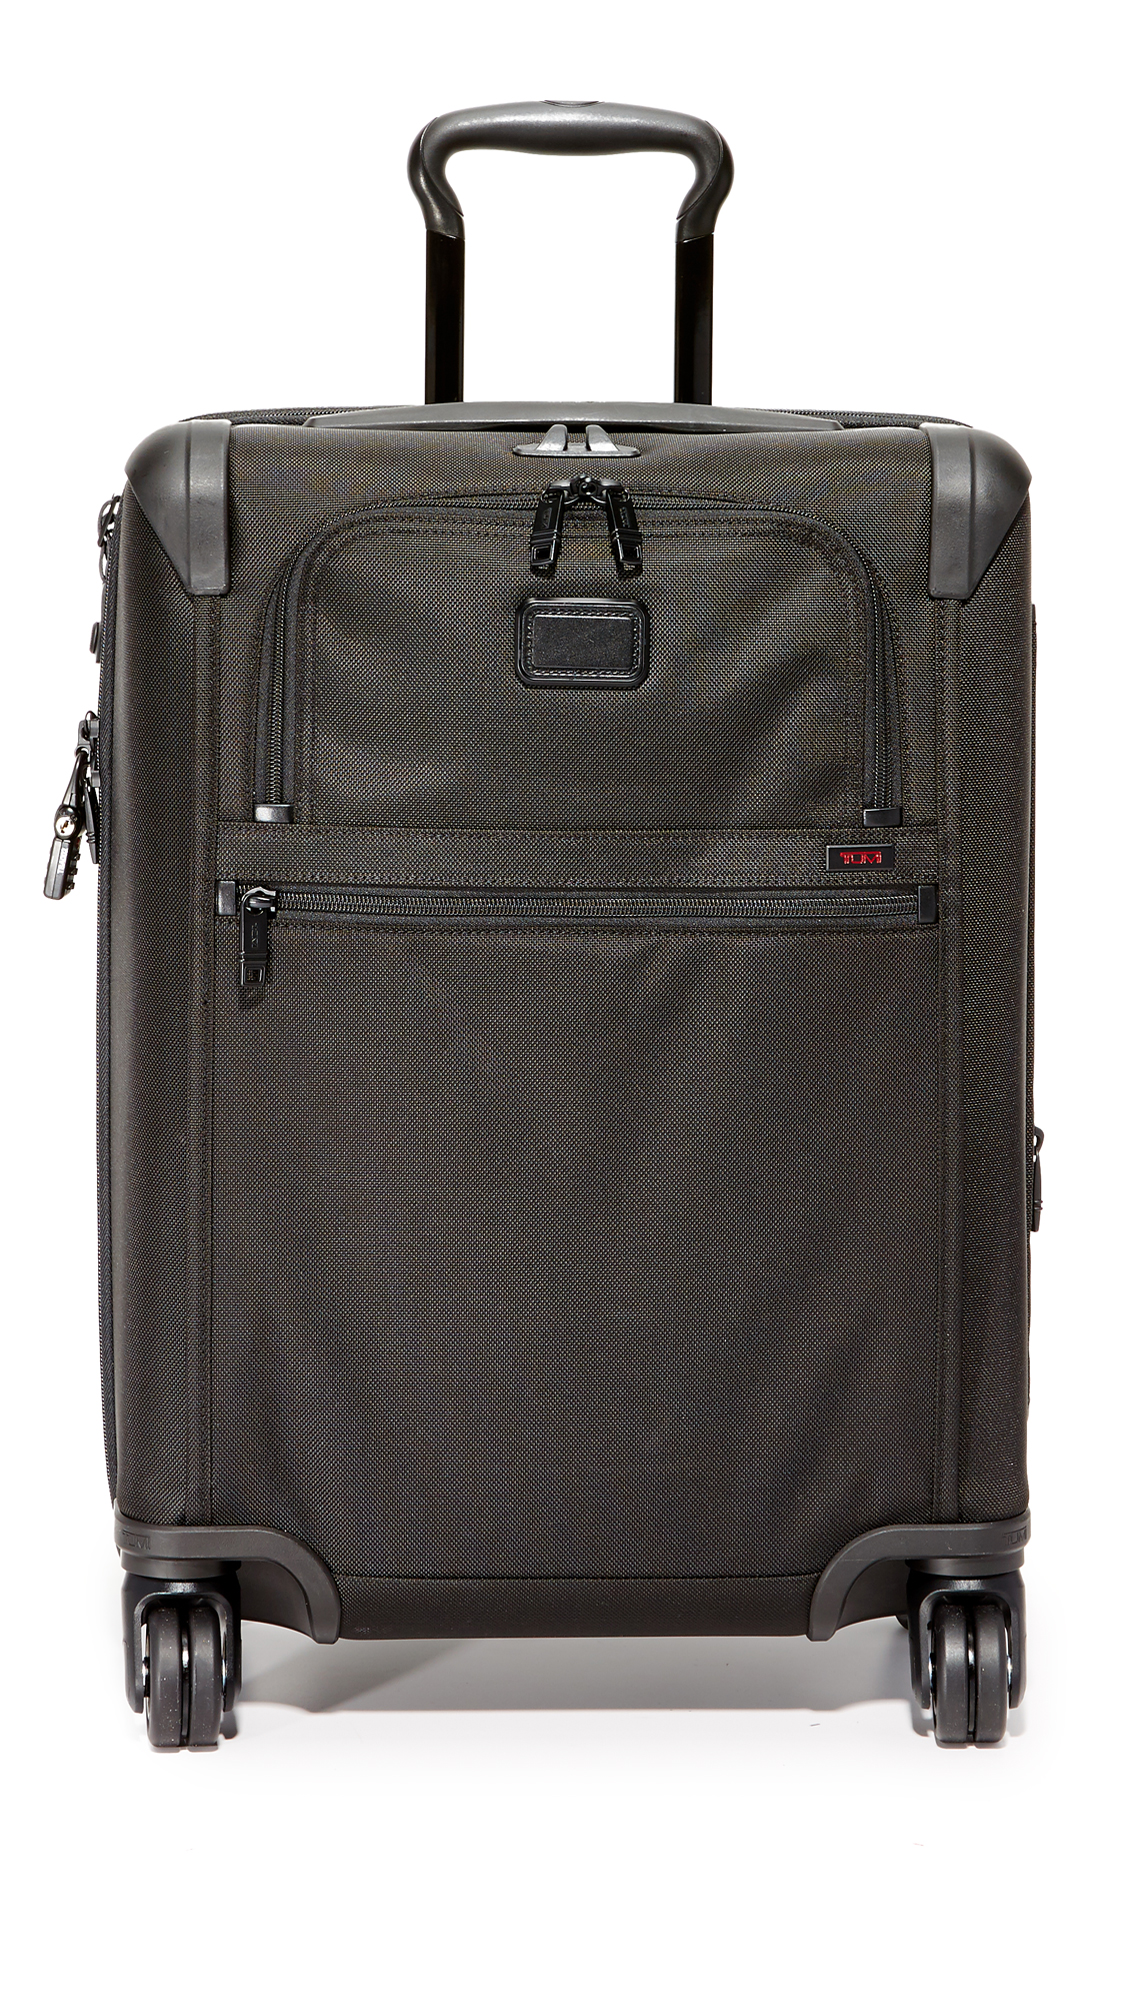 ALPHA 2 CONTINENTAL CARRY ON SUITCASE